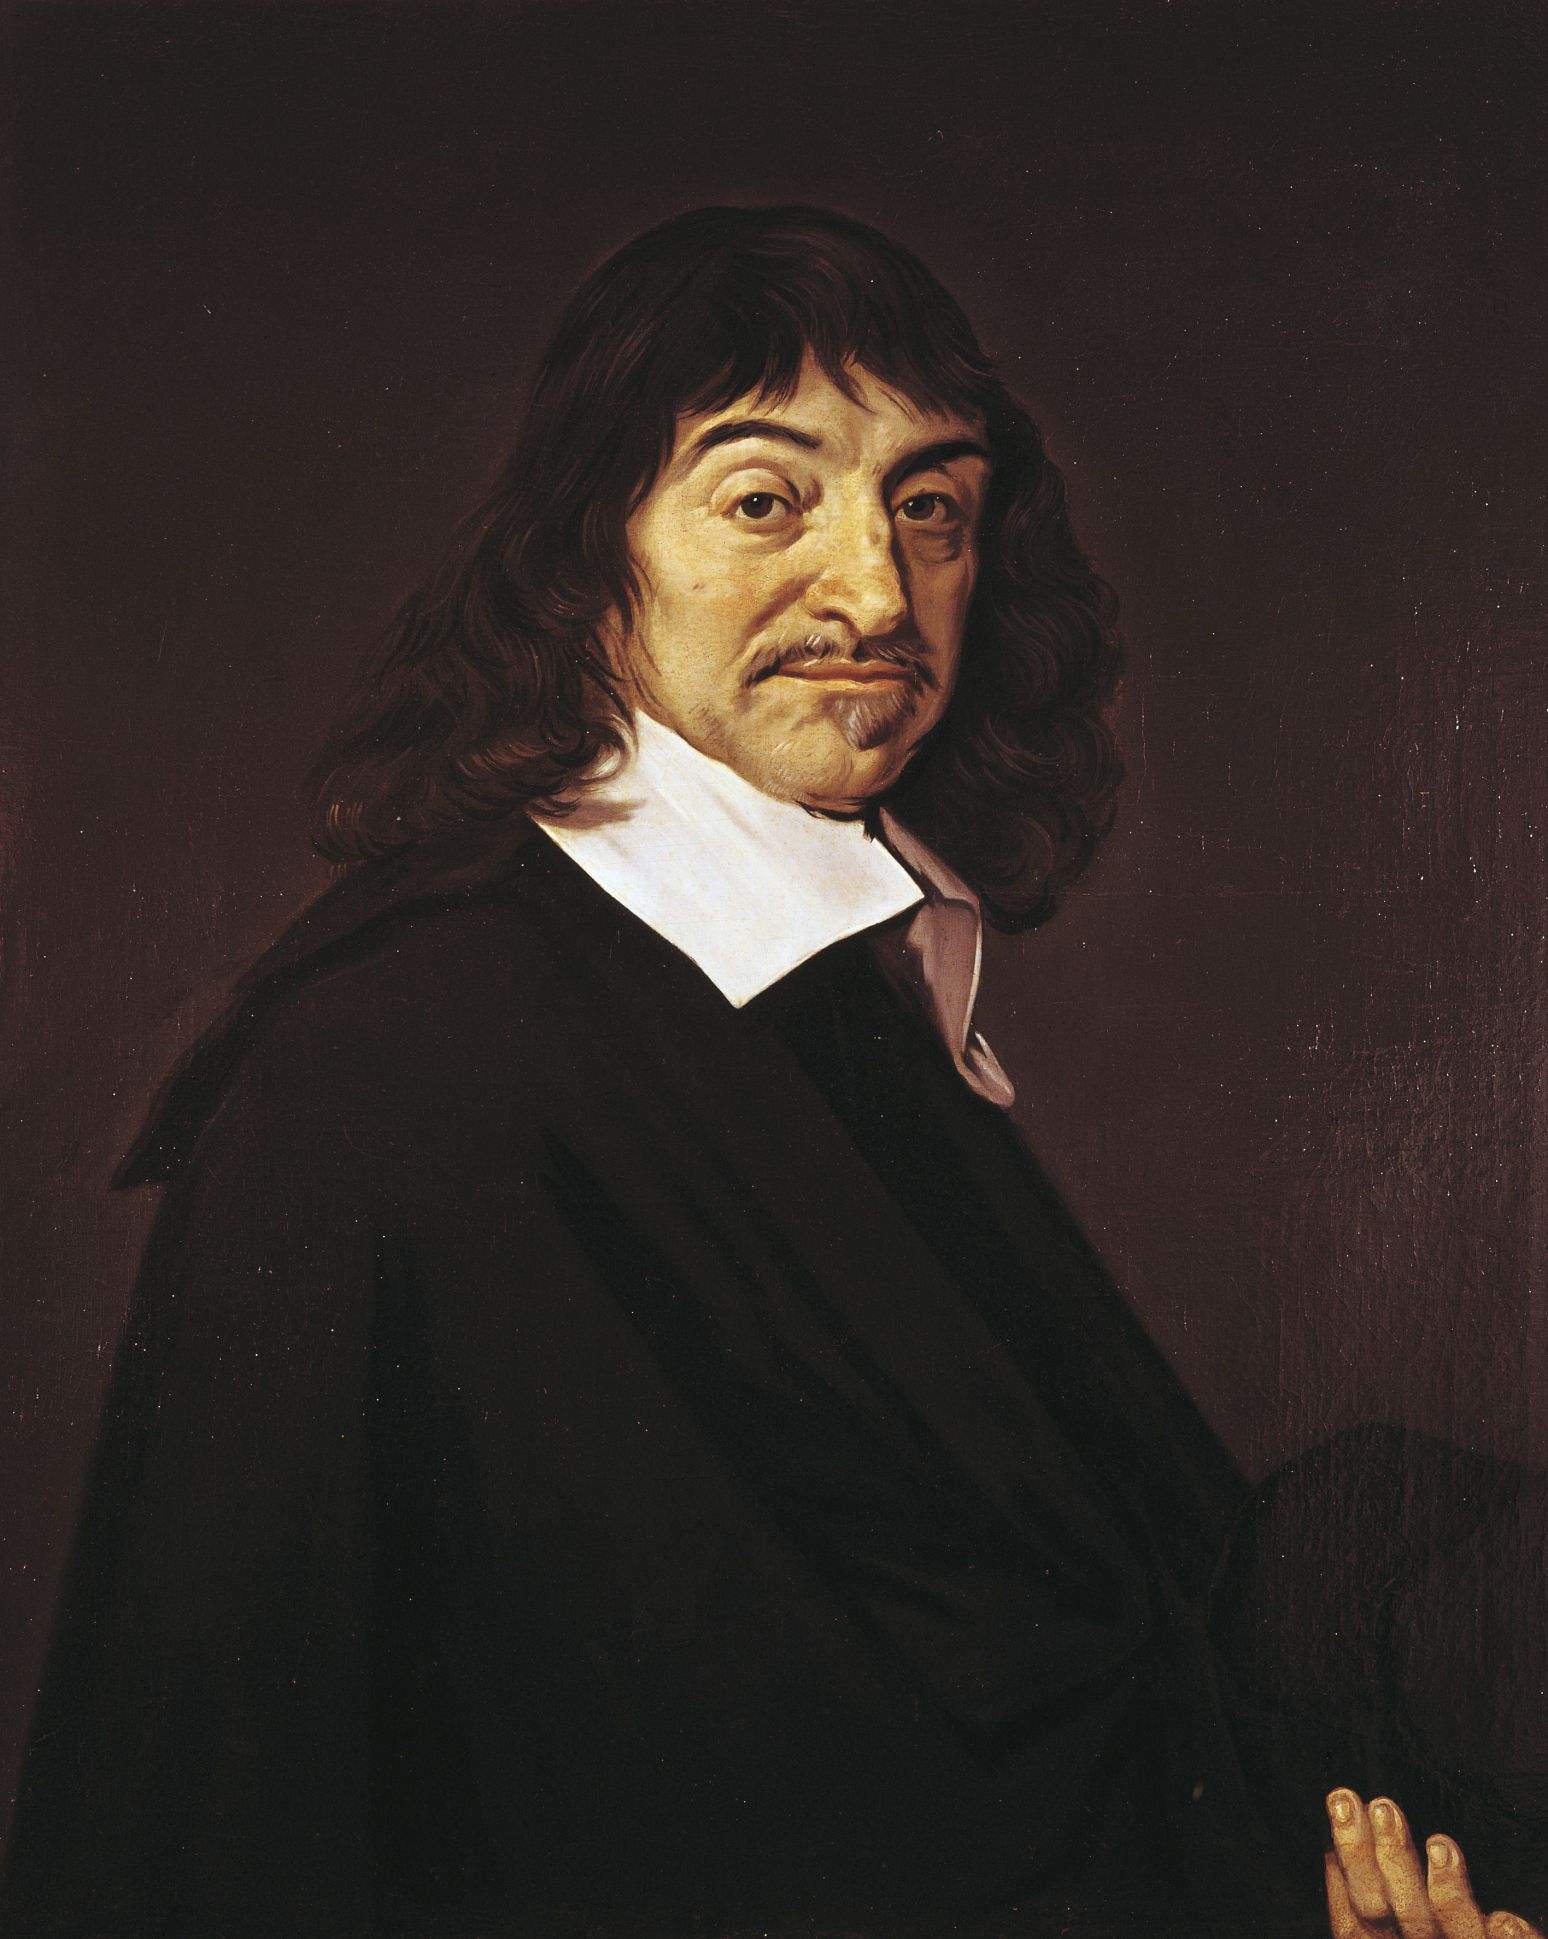 descartes meditation iii Meditations on first philosophy rené descartes the squashed version of thomas hobbes objections to the meditations, and descartes replies against meditation iii.